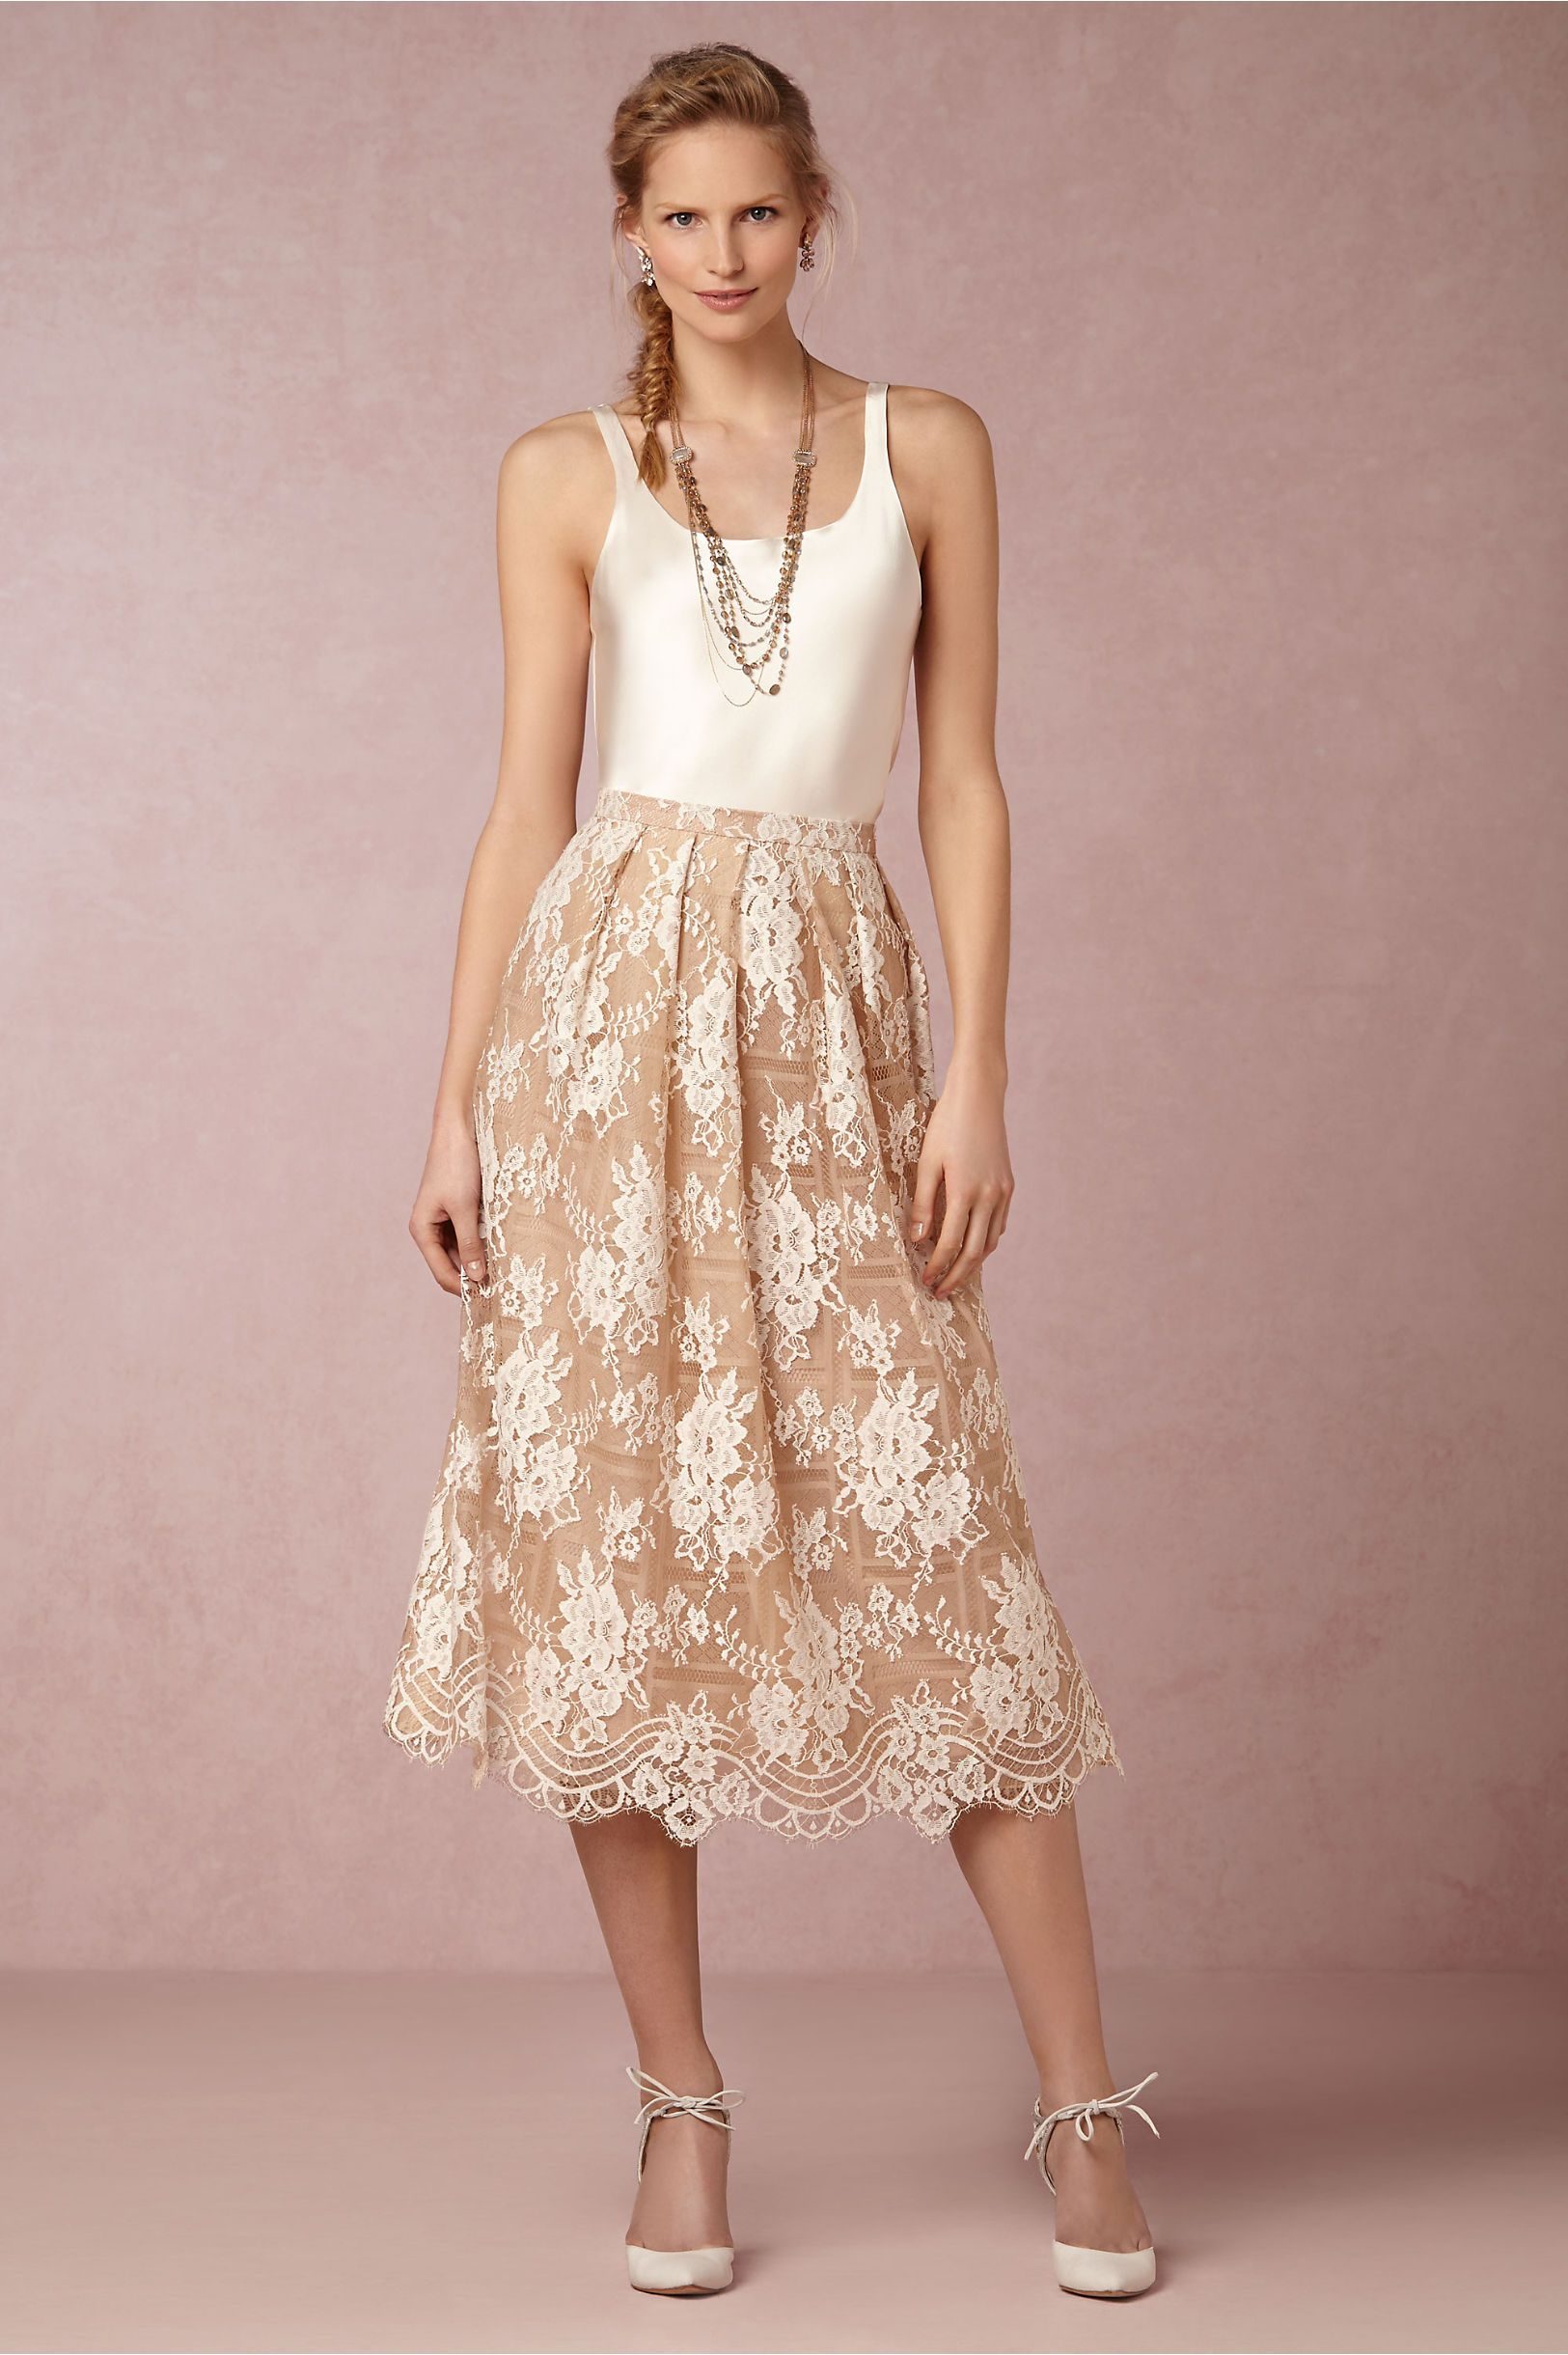 85212fc25116 Kennedy Skirt and Perpetuity Camisole in Bride Reception Dresses at BHLDN